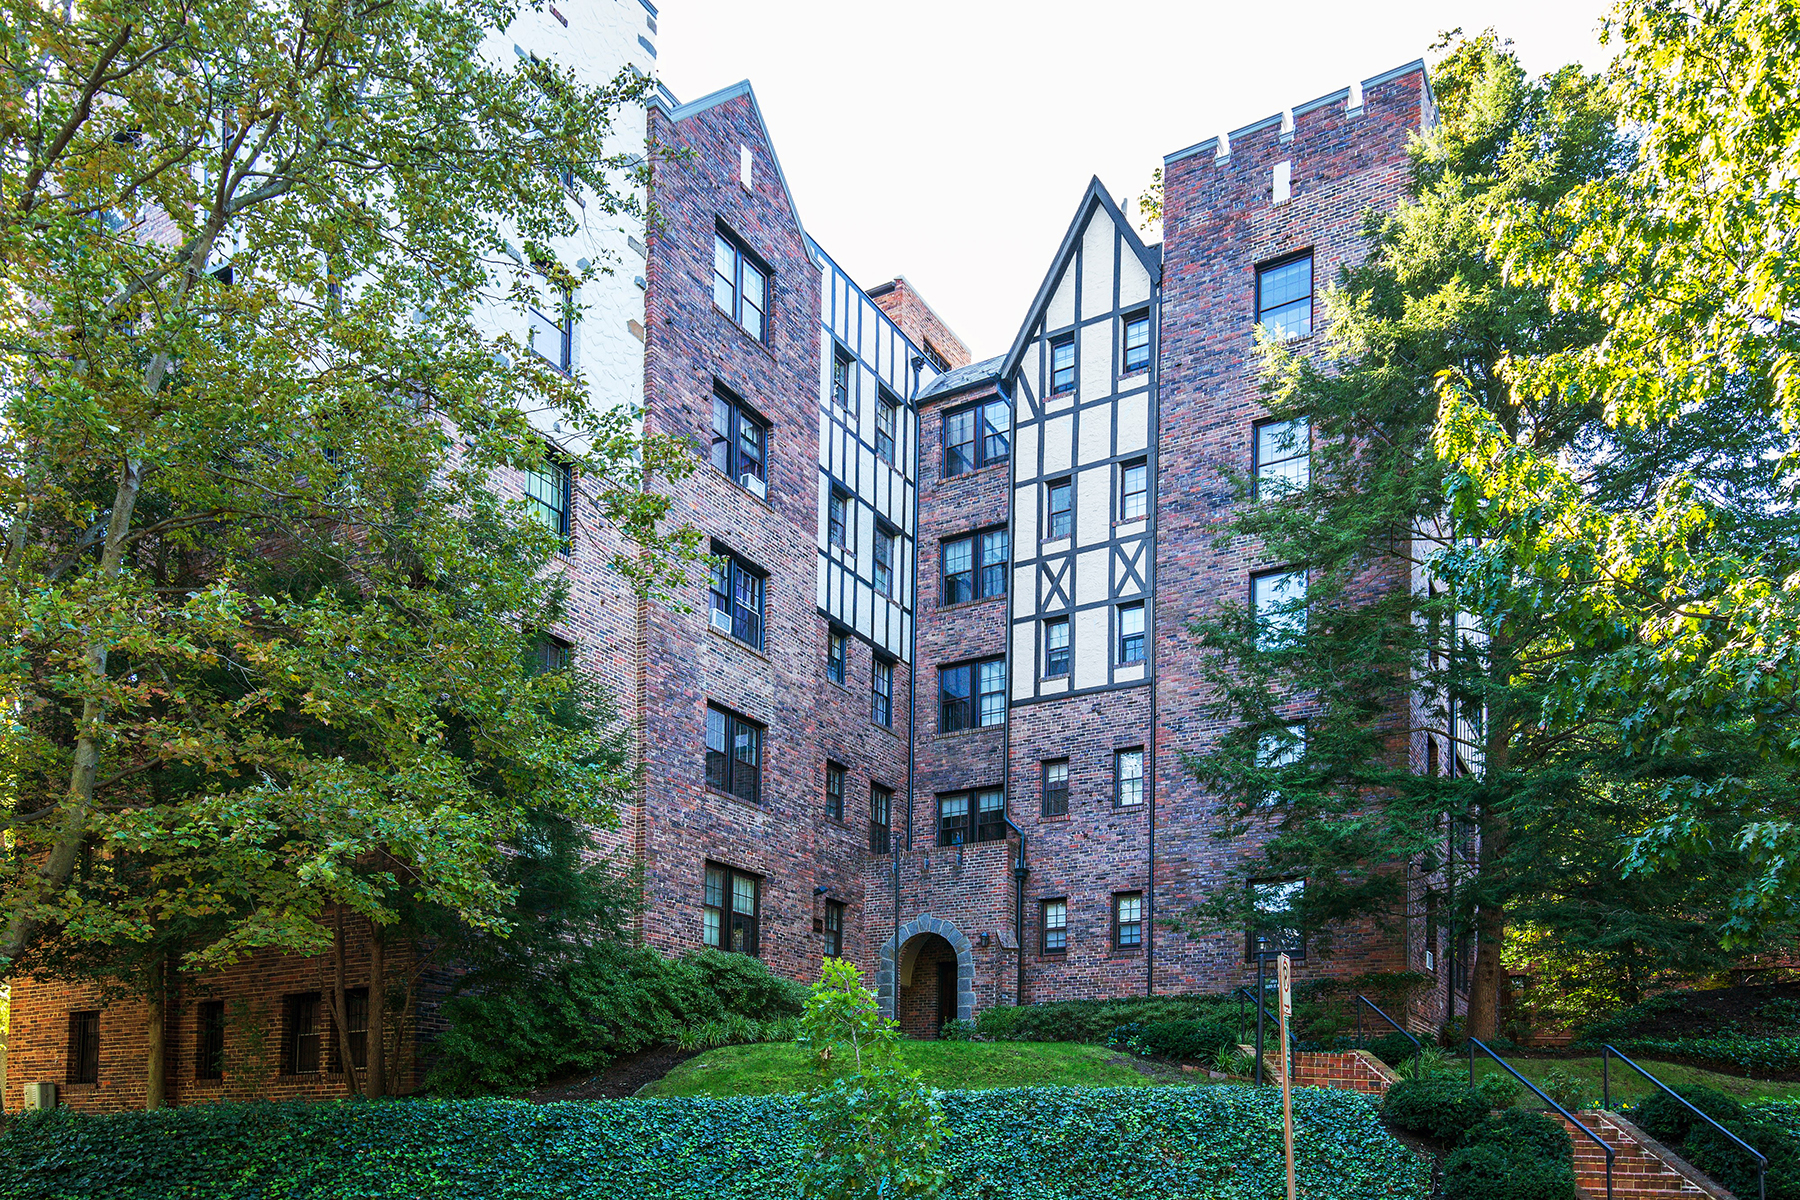 Other Residential for Sale at 3016 Tilden St NW #103 3016 Tilden St NW #103 Washington, District Of Columbia 20008 United States